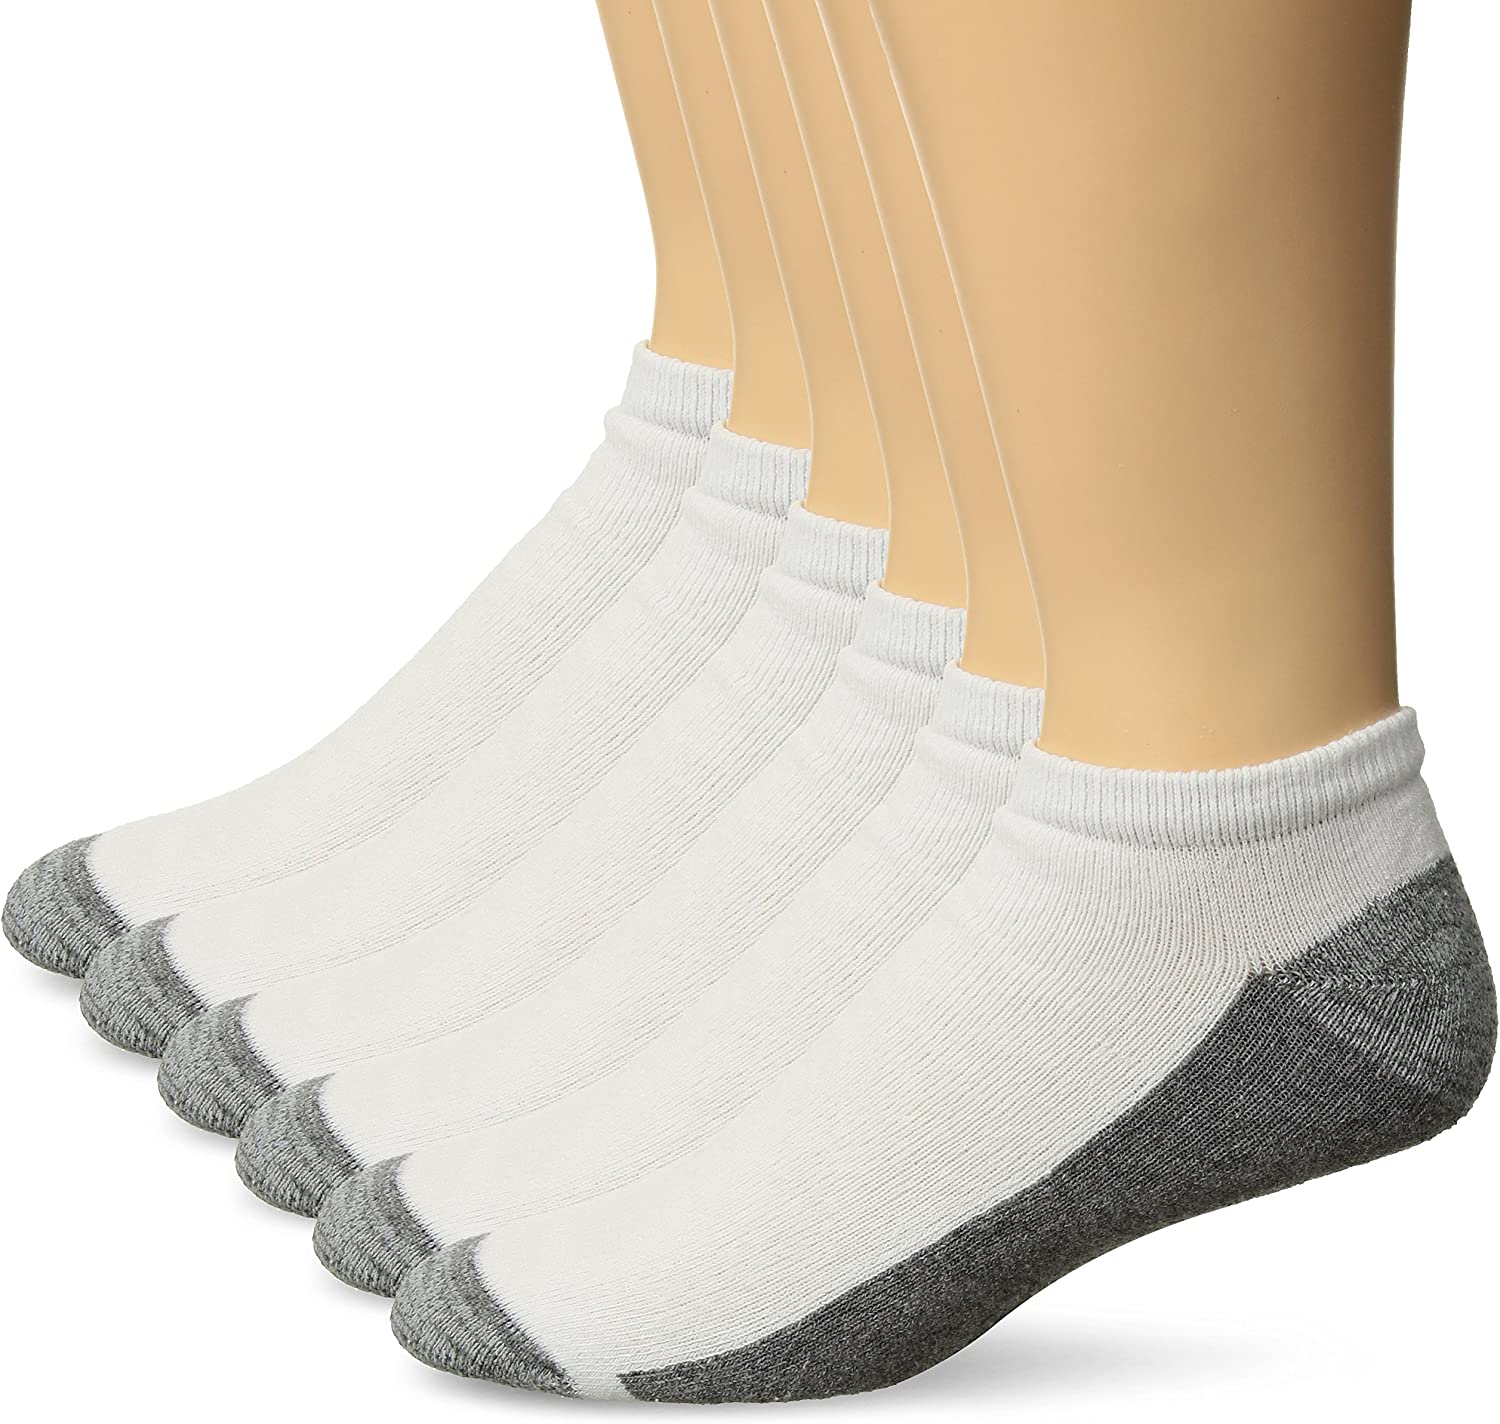 Hanes Men's Comfortblend Max Cushion 6-pack White Low Cut Socks, Shoe Size: 6-12